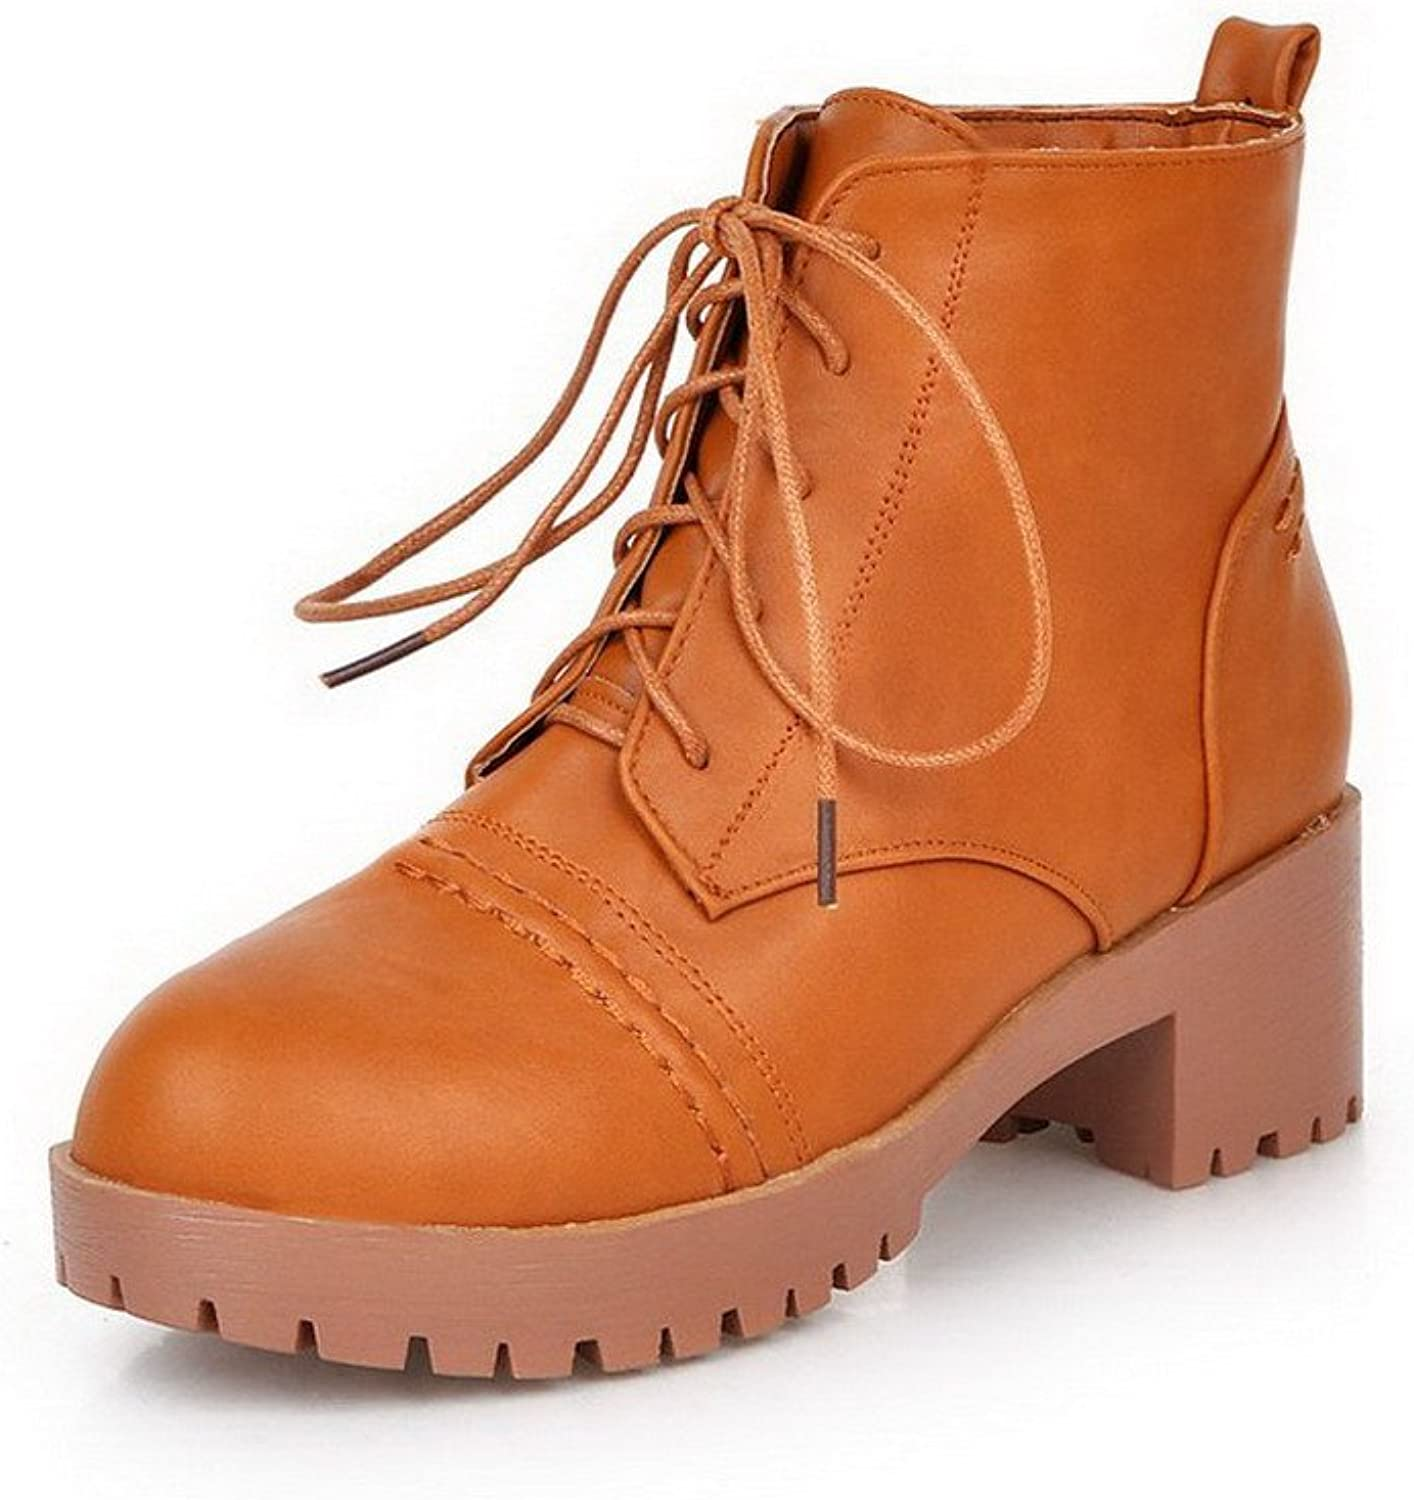 WeenFashion Women's Solid Kitten-Heels Closed Round Toe PU Lace-up Boots